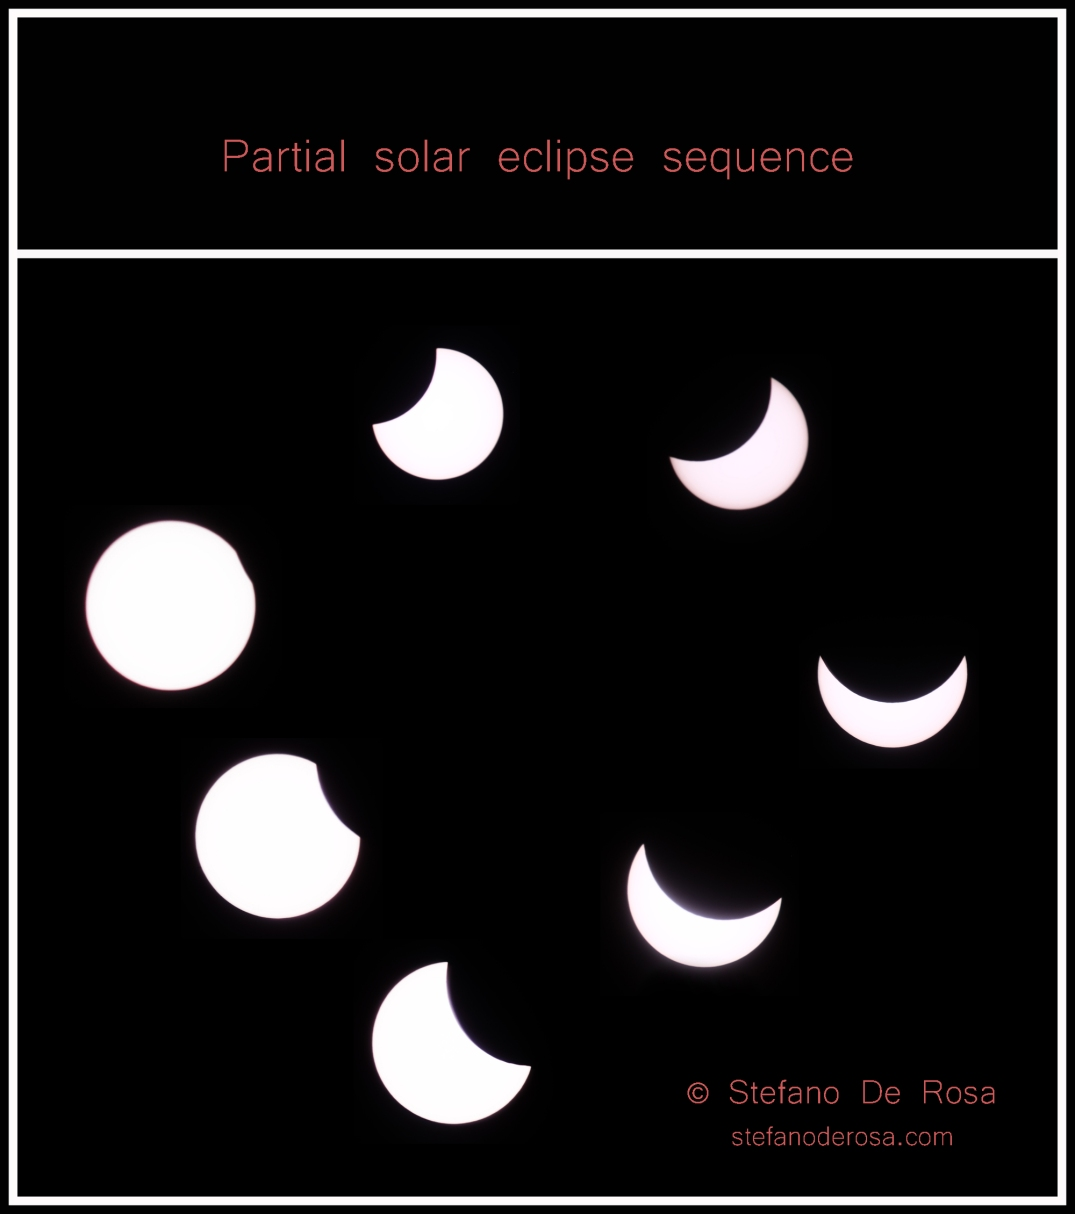 Partial eclipse sequence